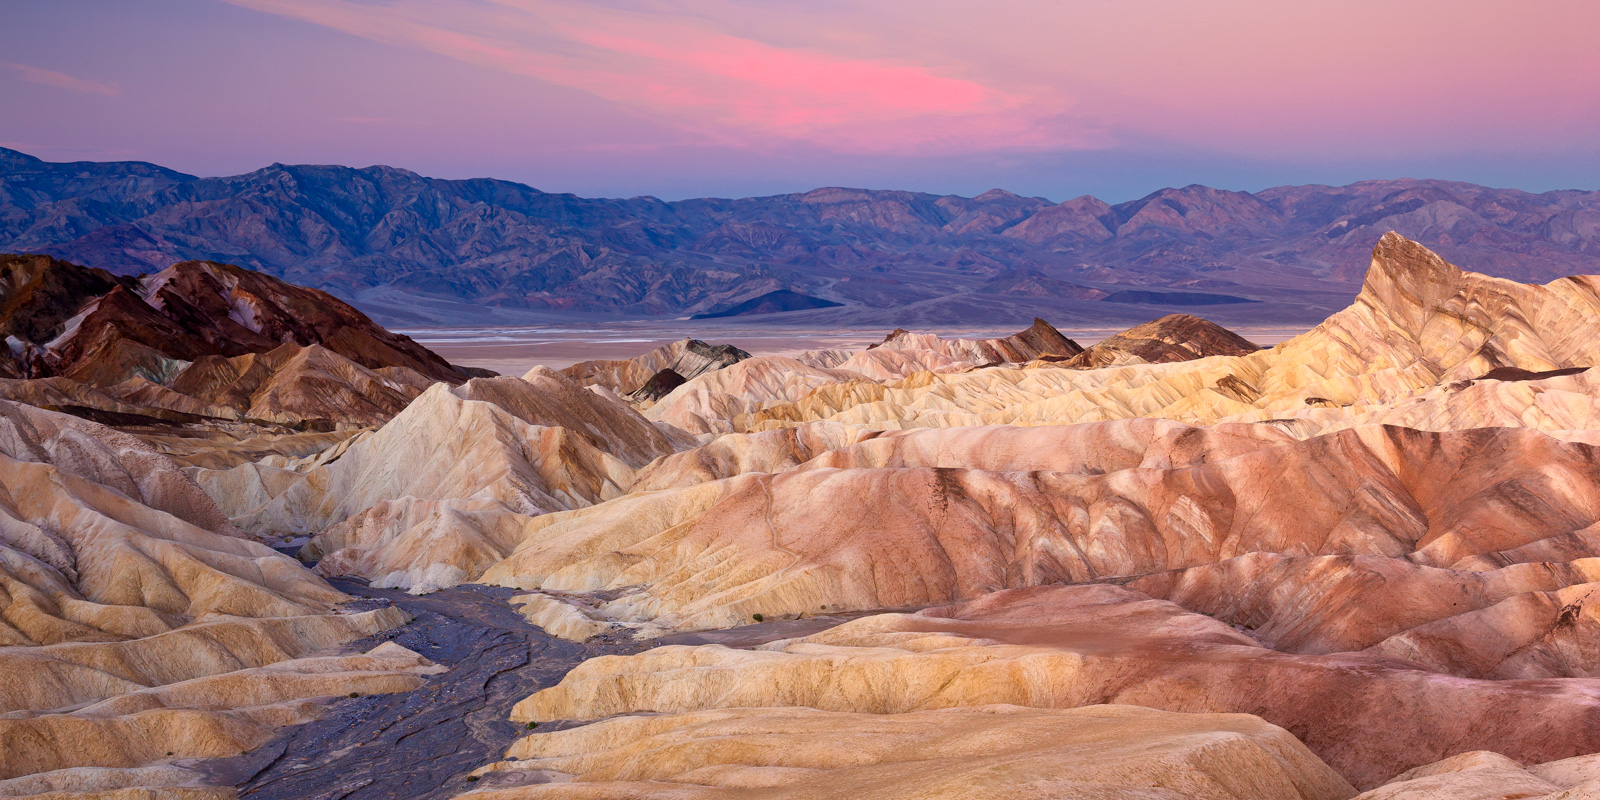 A Limited Edition, Fine Art photograph of the colors in the hardened sand at Zabriskie Point at sunrise in Death Valley National...